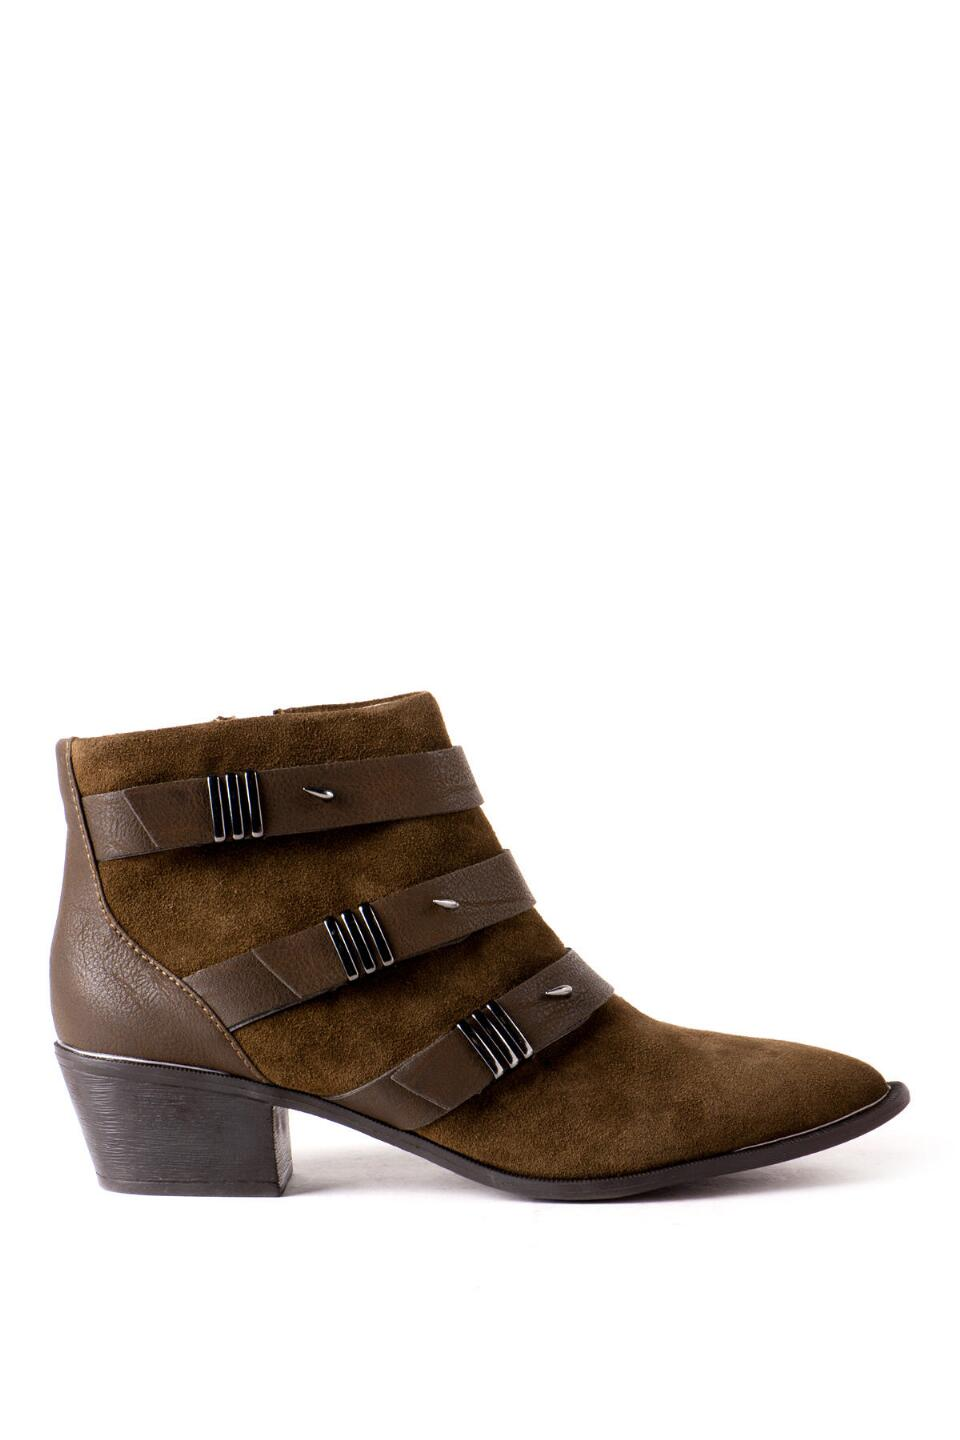 Circus By Sam Edelman Shoes Harley Buckle Bootie Francesca S